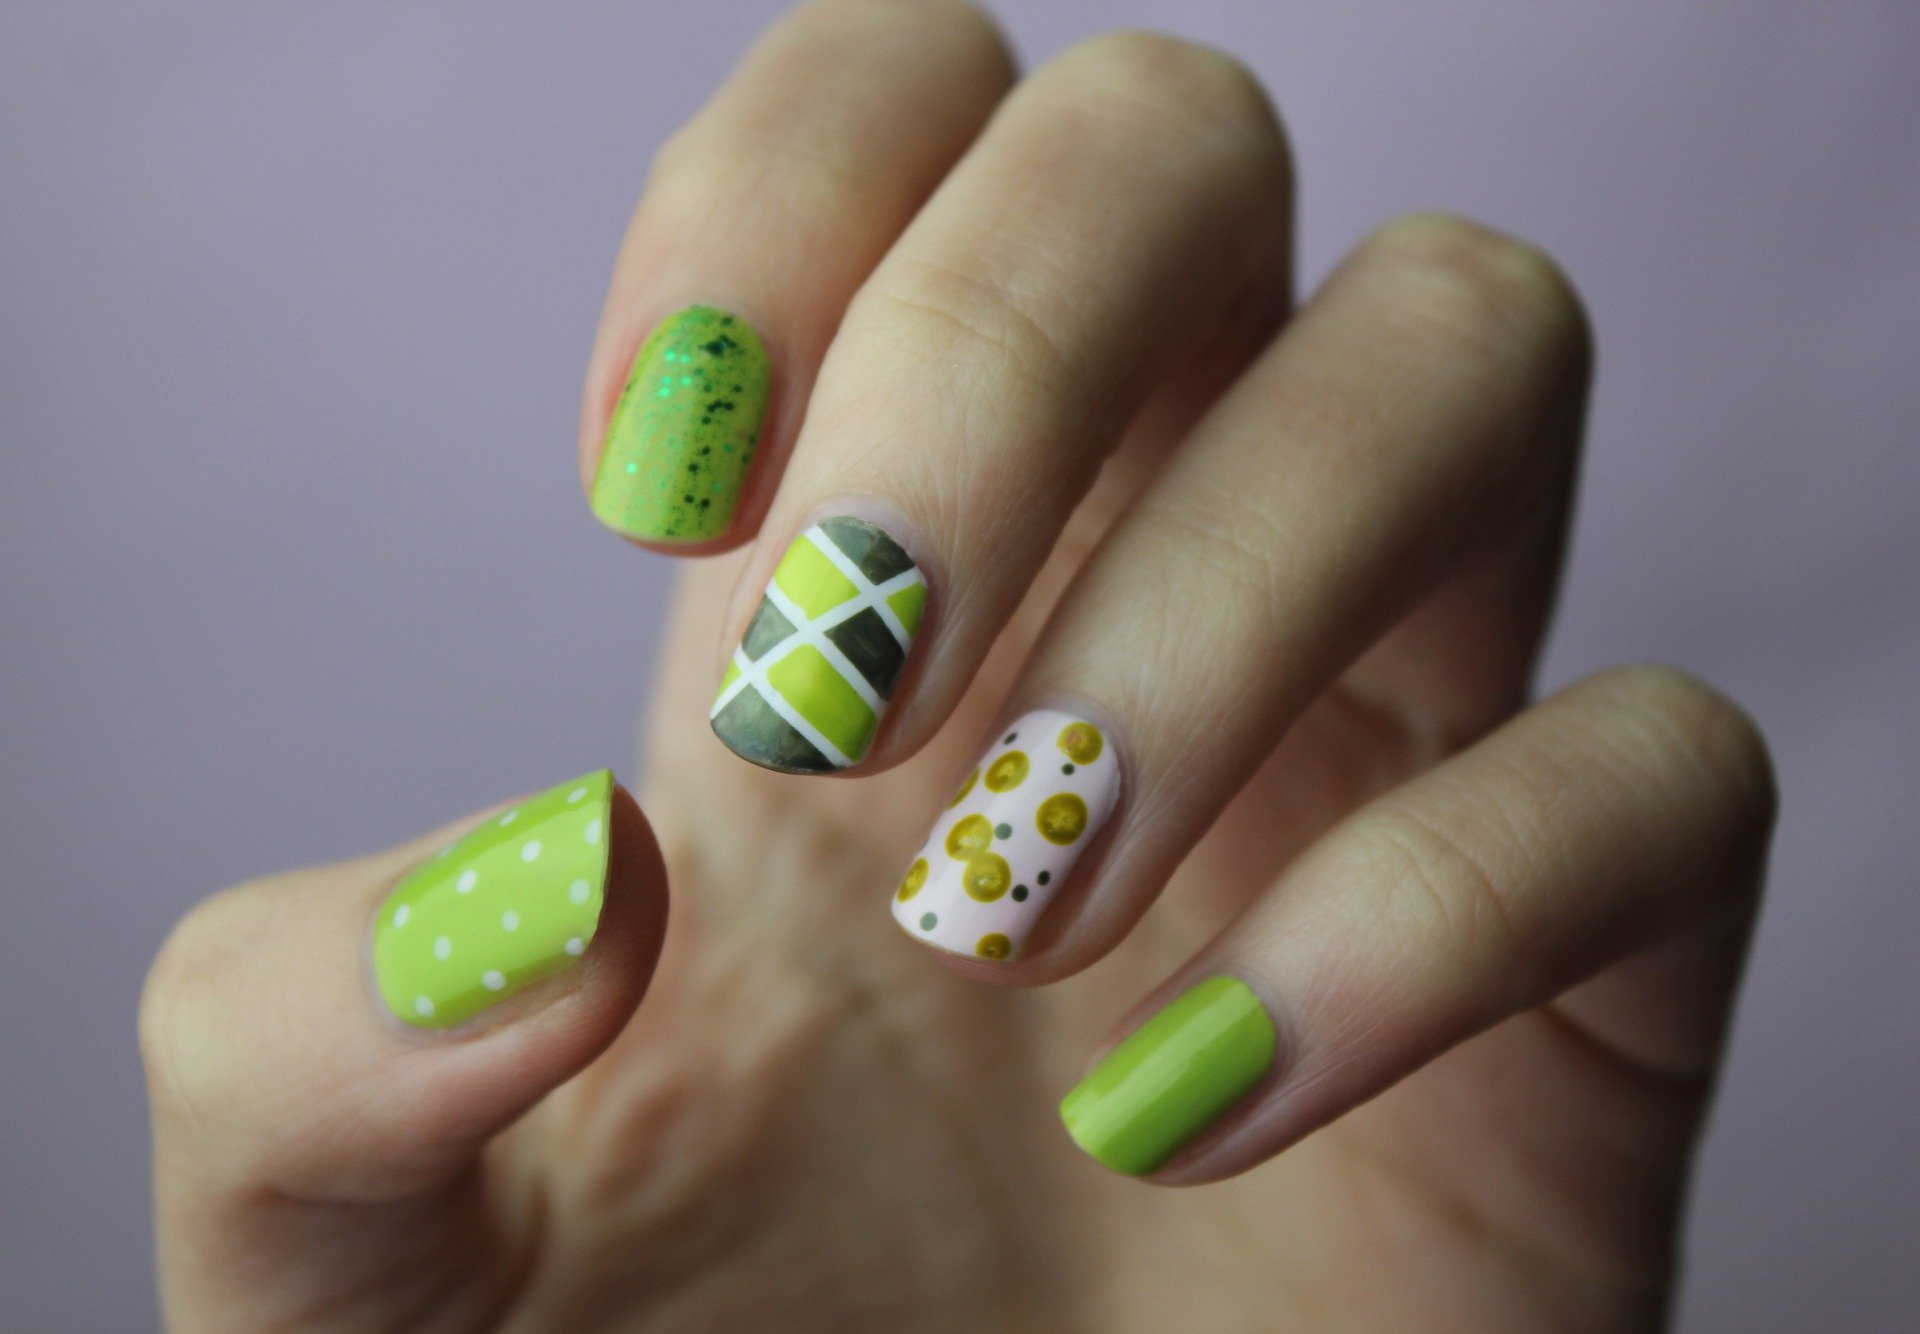 Close up of green themed nail art on a woman's hand. For use on the Basic Nail Art Course page.